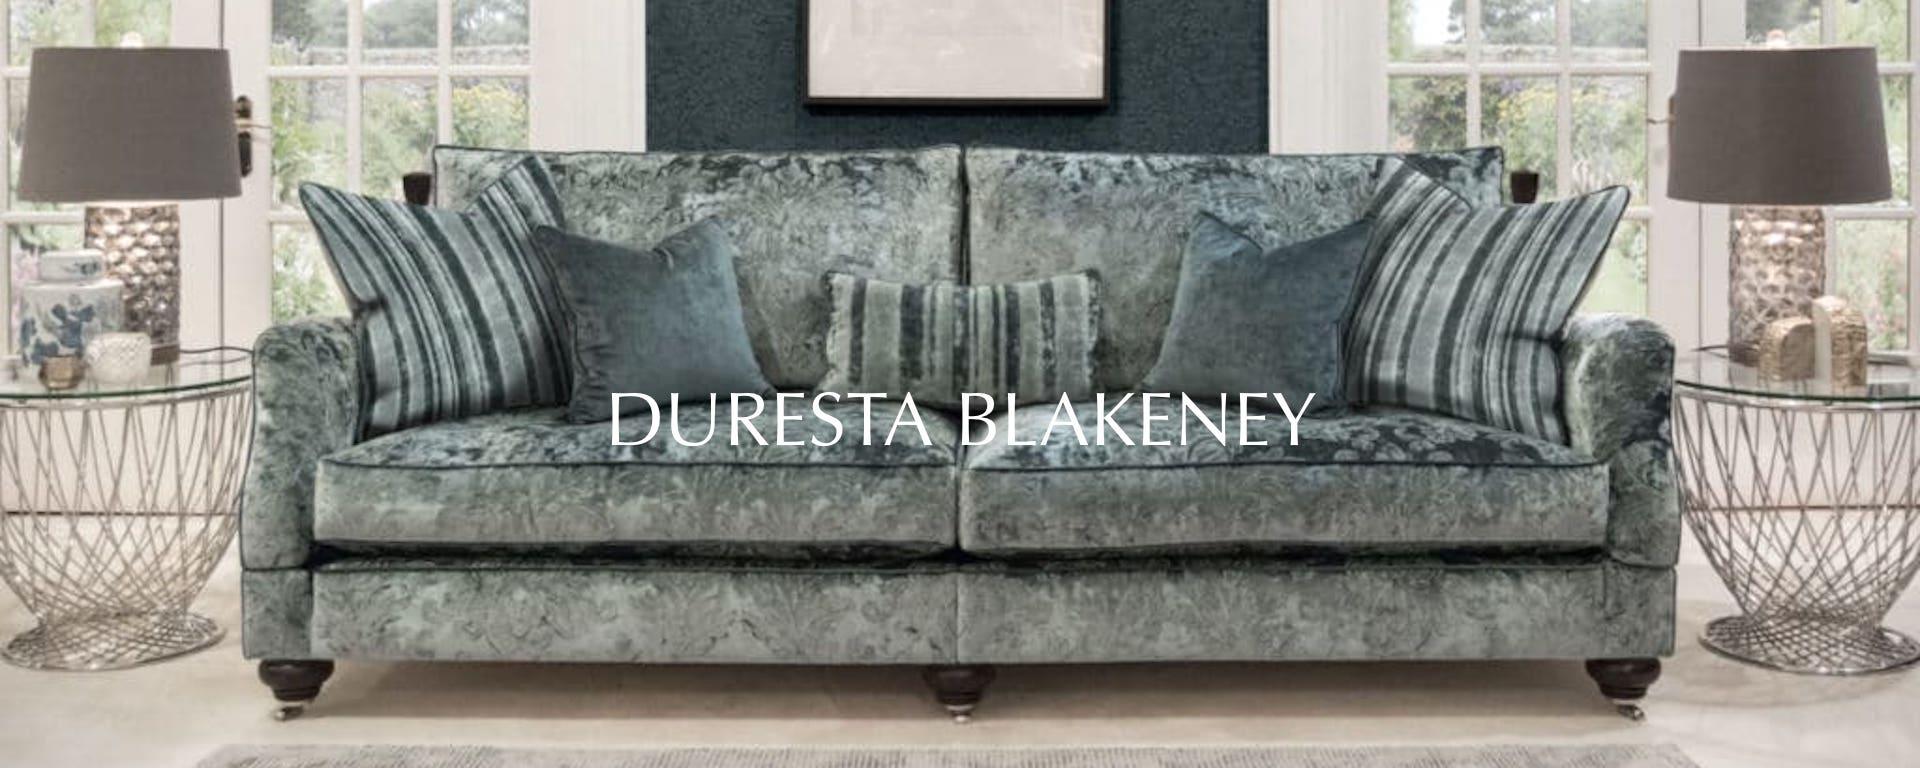 Duresta Blakeney collection